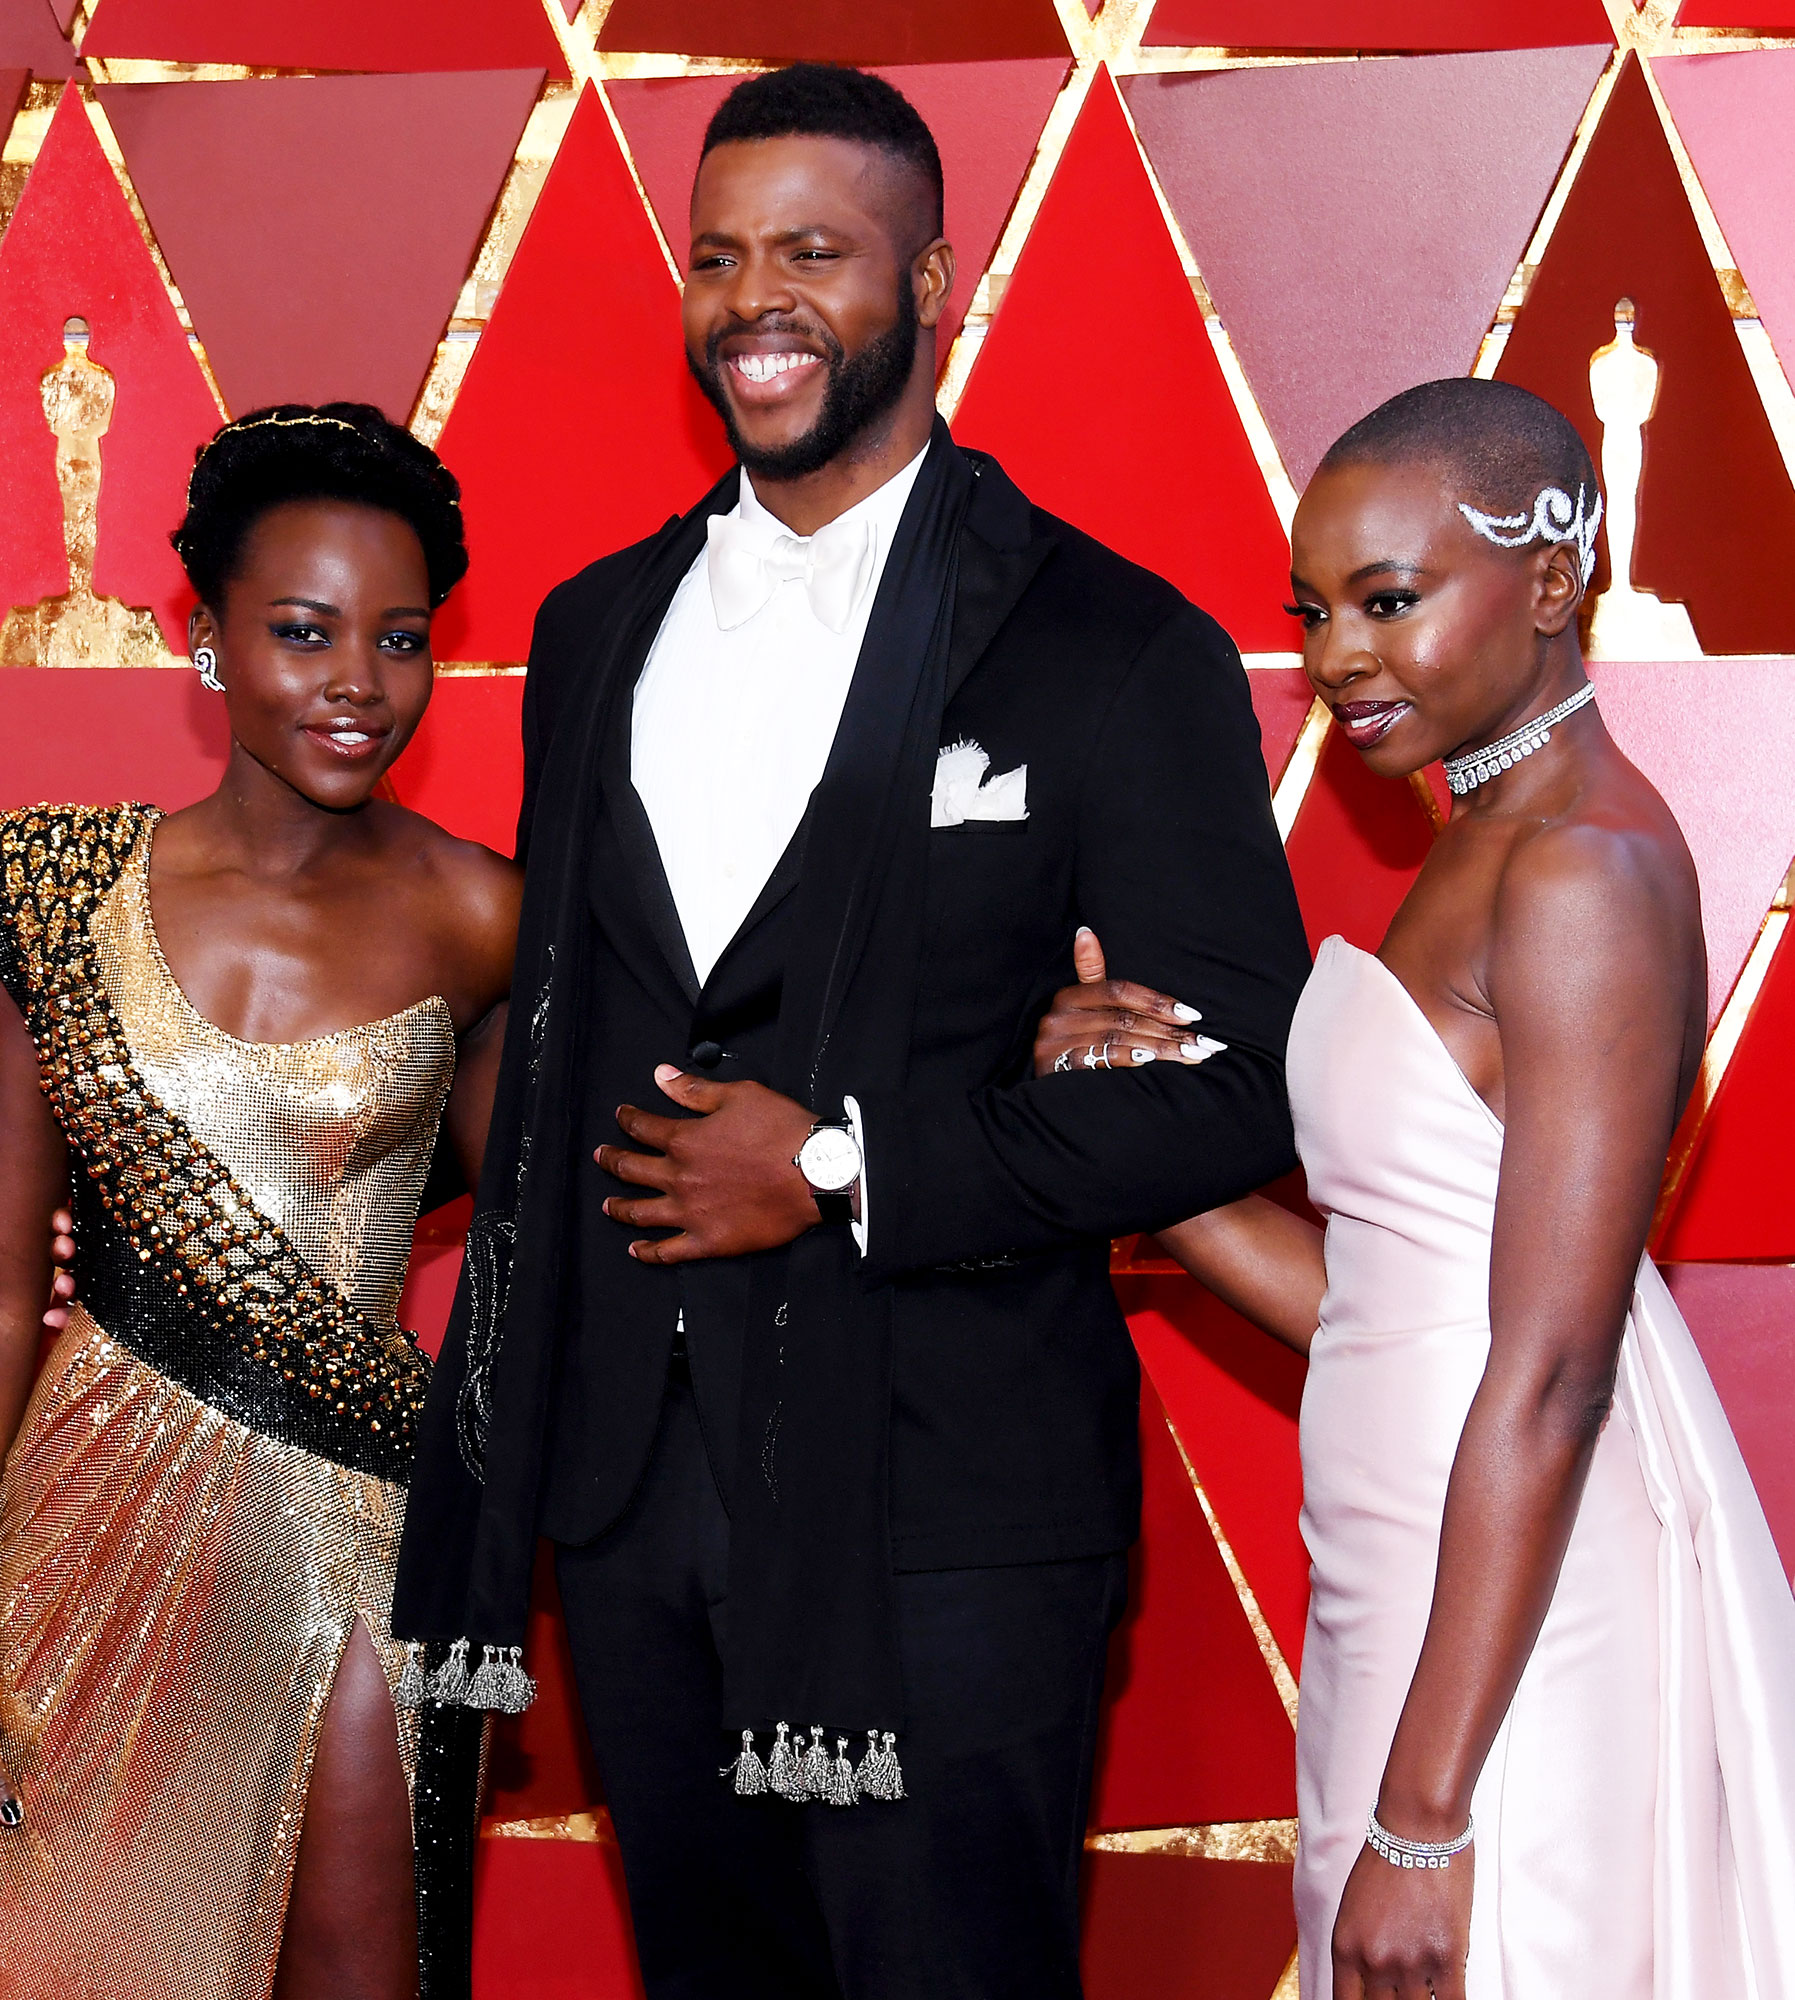 Lupita Nyong'o, Winston Duke, and Danai Gurira Lead Makeup Artist for the Academy Awards, Bruce Grayson, Shares His Number One Product and Other Behind-the-Scenes Se - (L-R) Lupita Nyong'o, Winston Duke, and Danai Gurira attends the 90th Annual Academy Awards at Hollywood